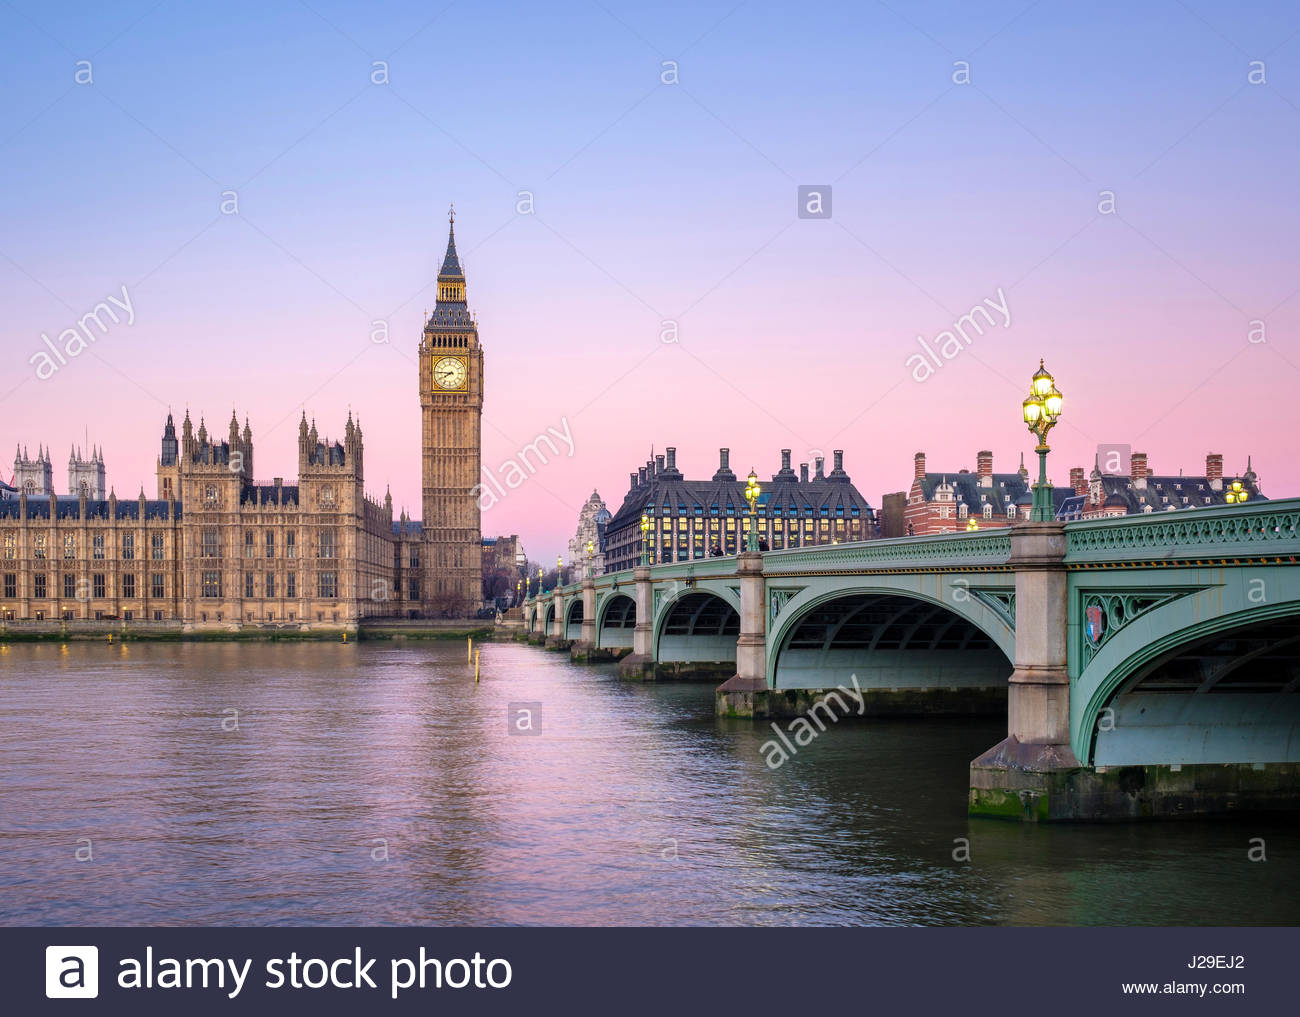 United Kingdom, England, London. Westminster Bridge, Palace of Westminster und der Uhr Turm von Big Ben (Elizabeth Stockfoto